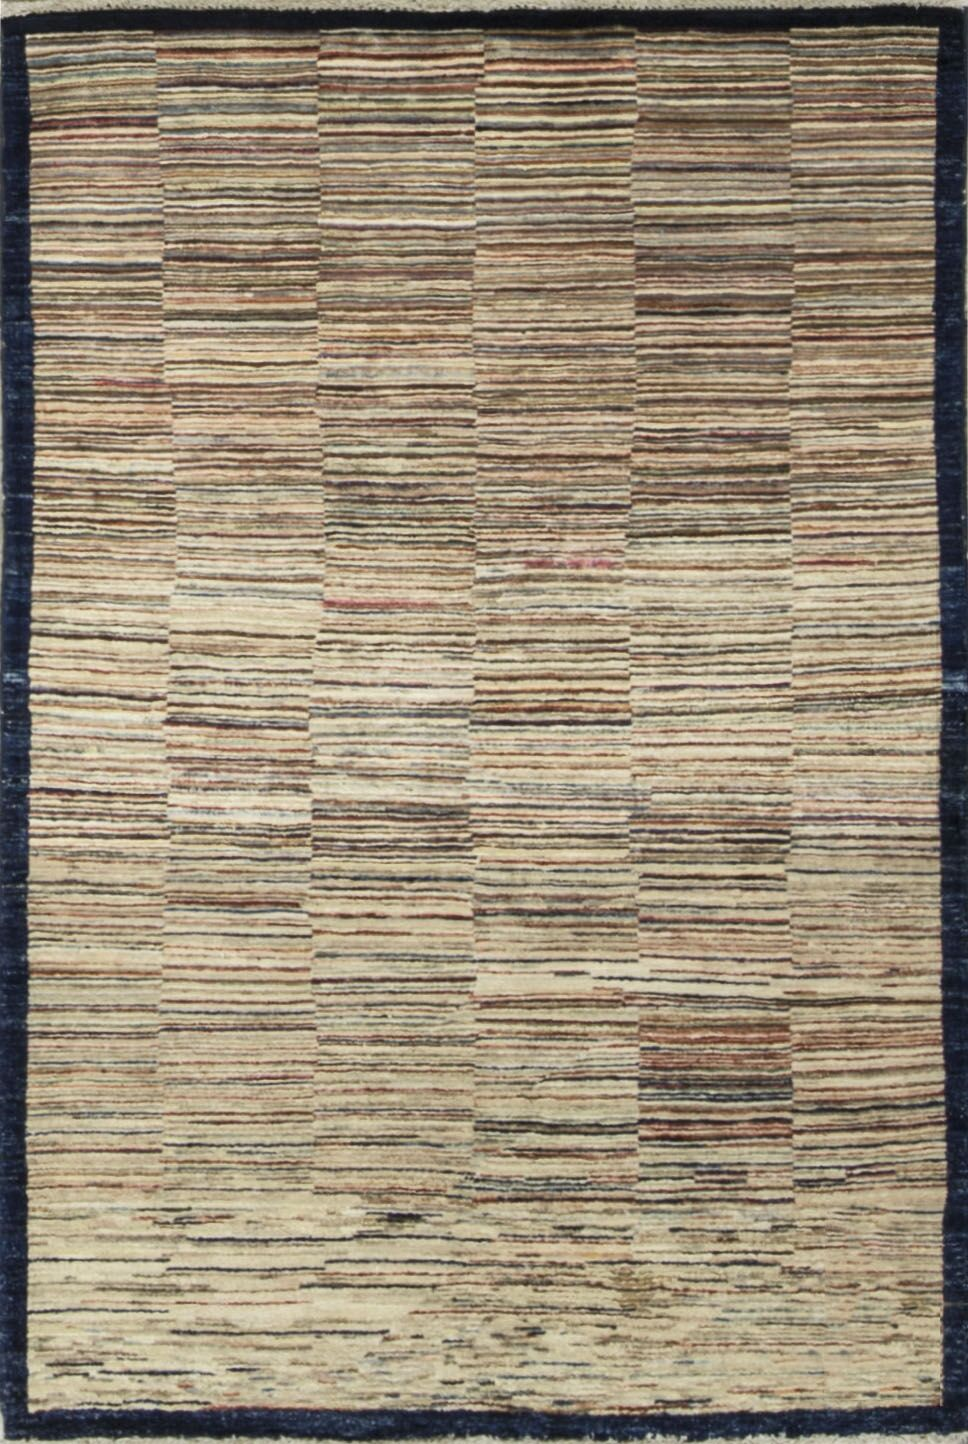 One-of-a-Kind Afghan Gabbeh Hand-Knotted Wool Woodland Area Rug